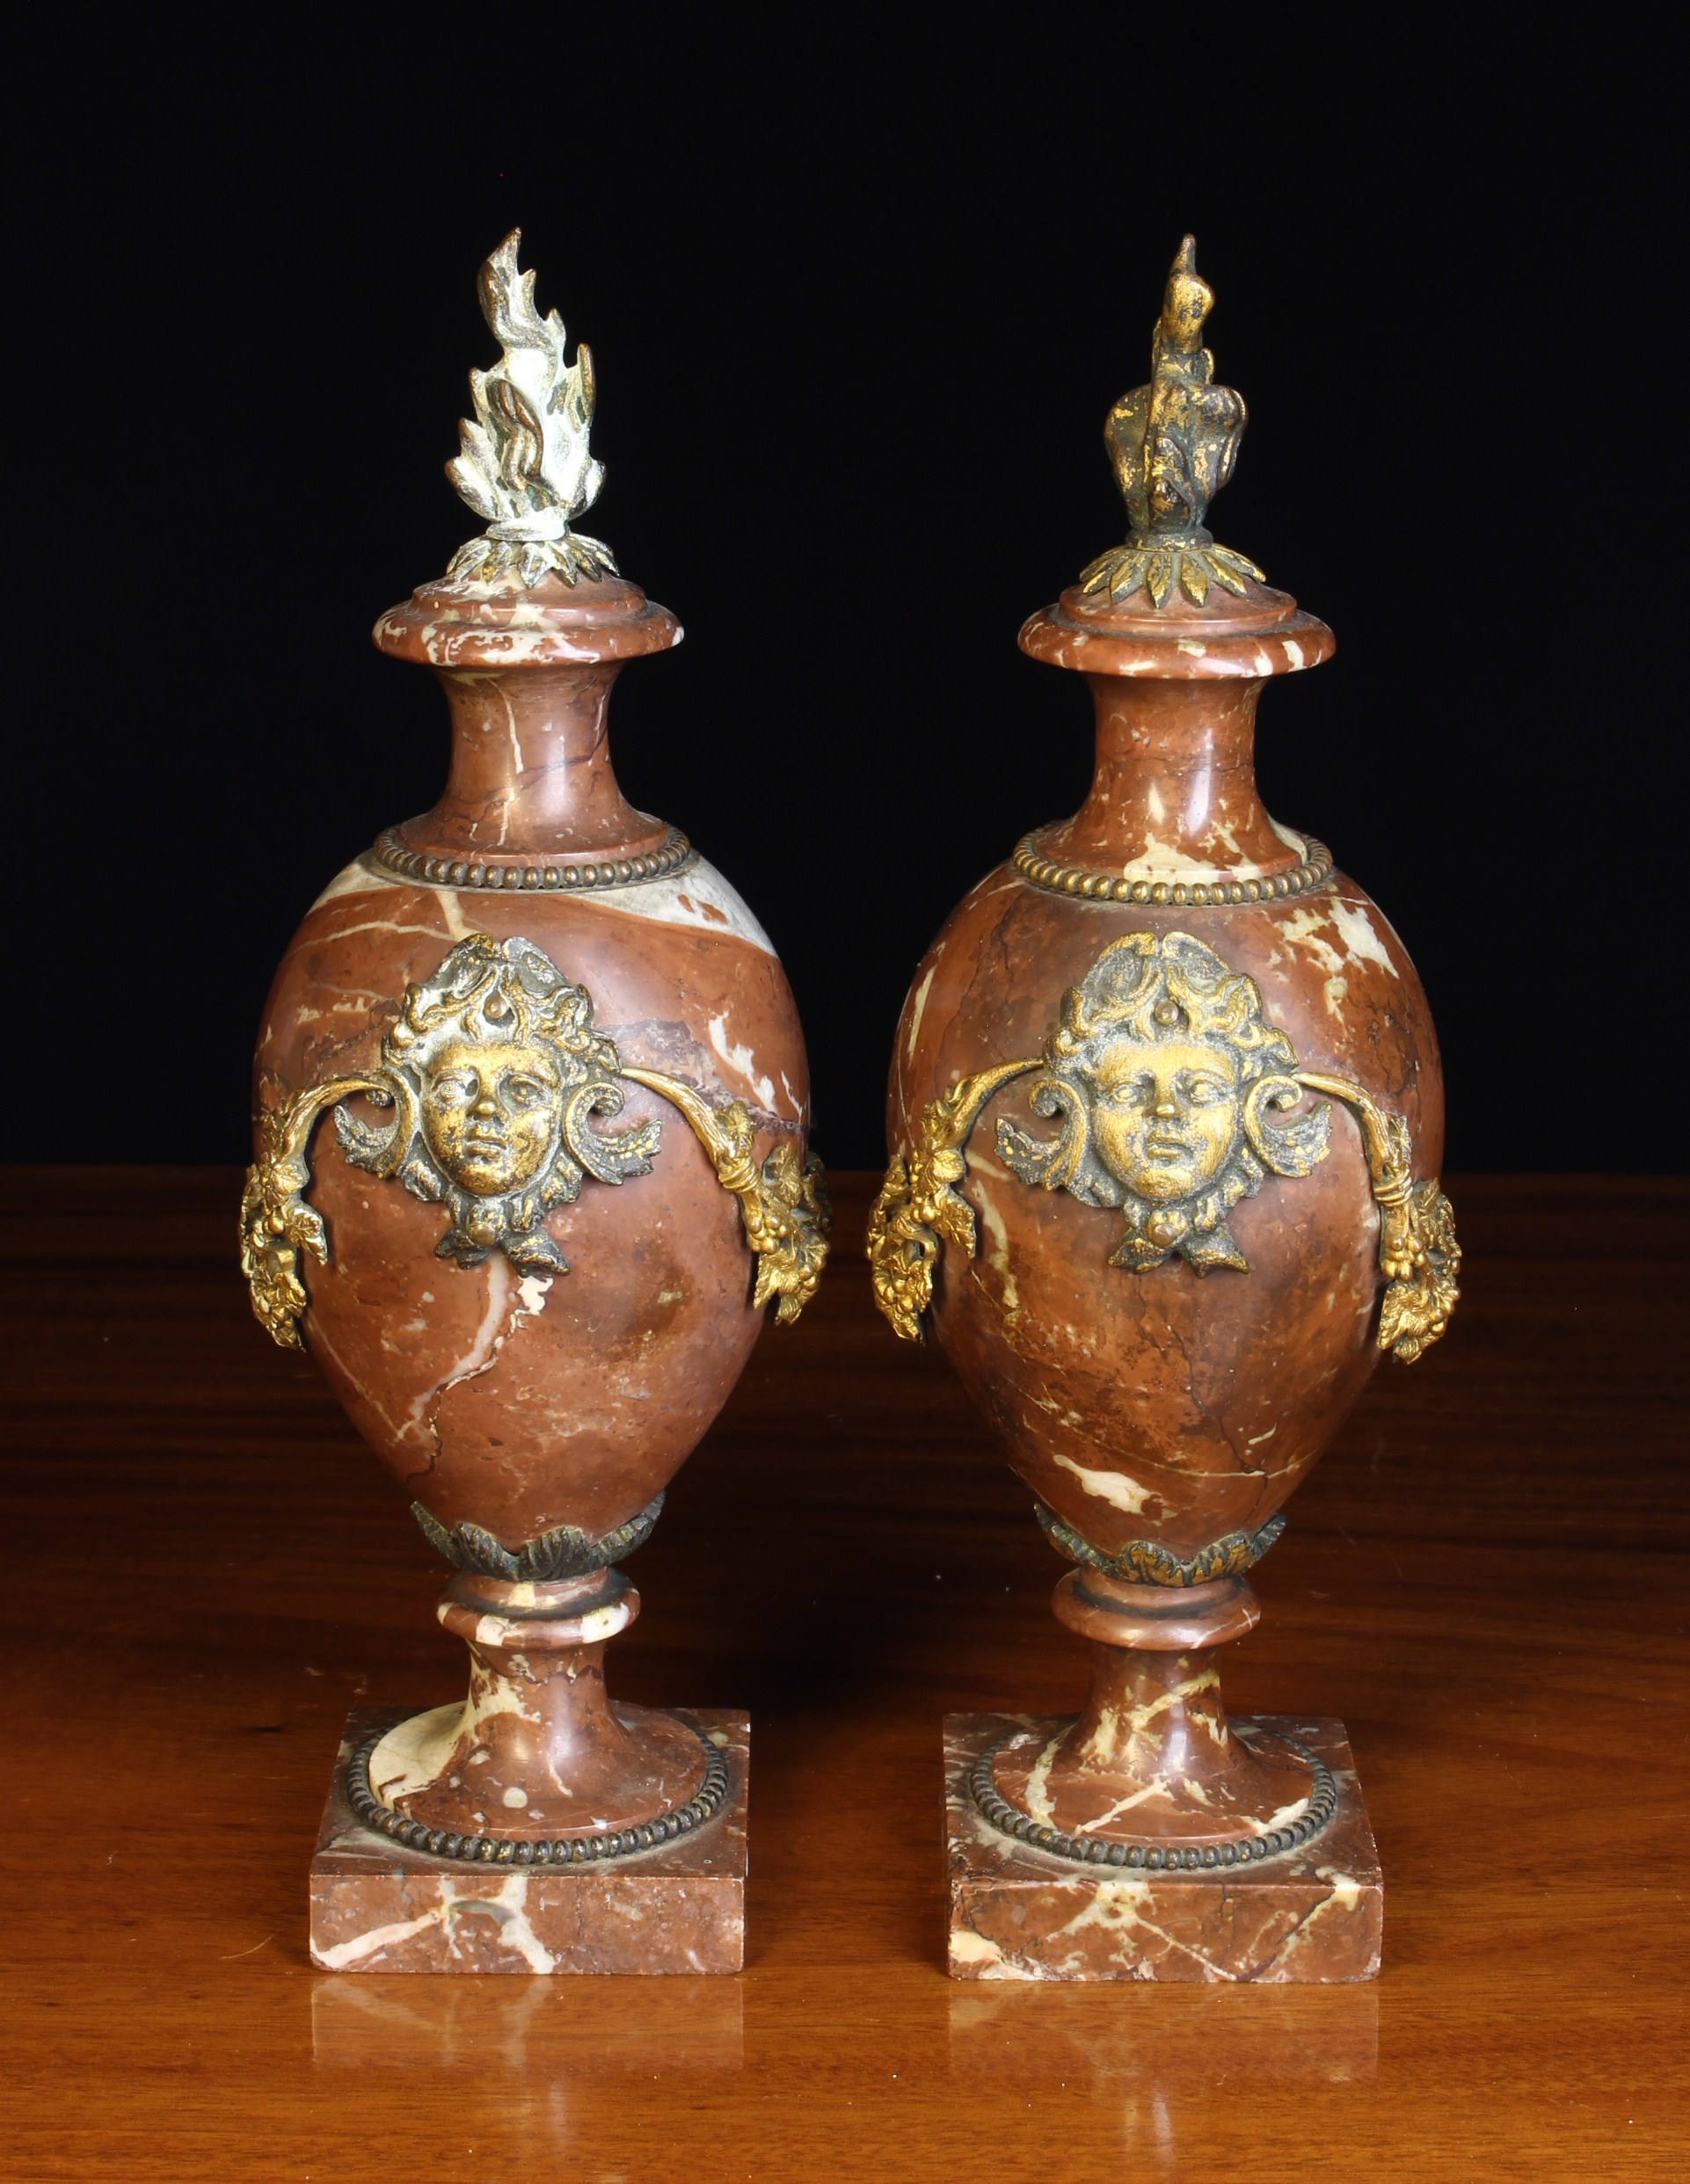 A Pair of Small 19th Century Rouge Marble Cassolettes with gilt metal mounts. - Image 2 of 2